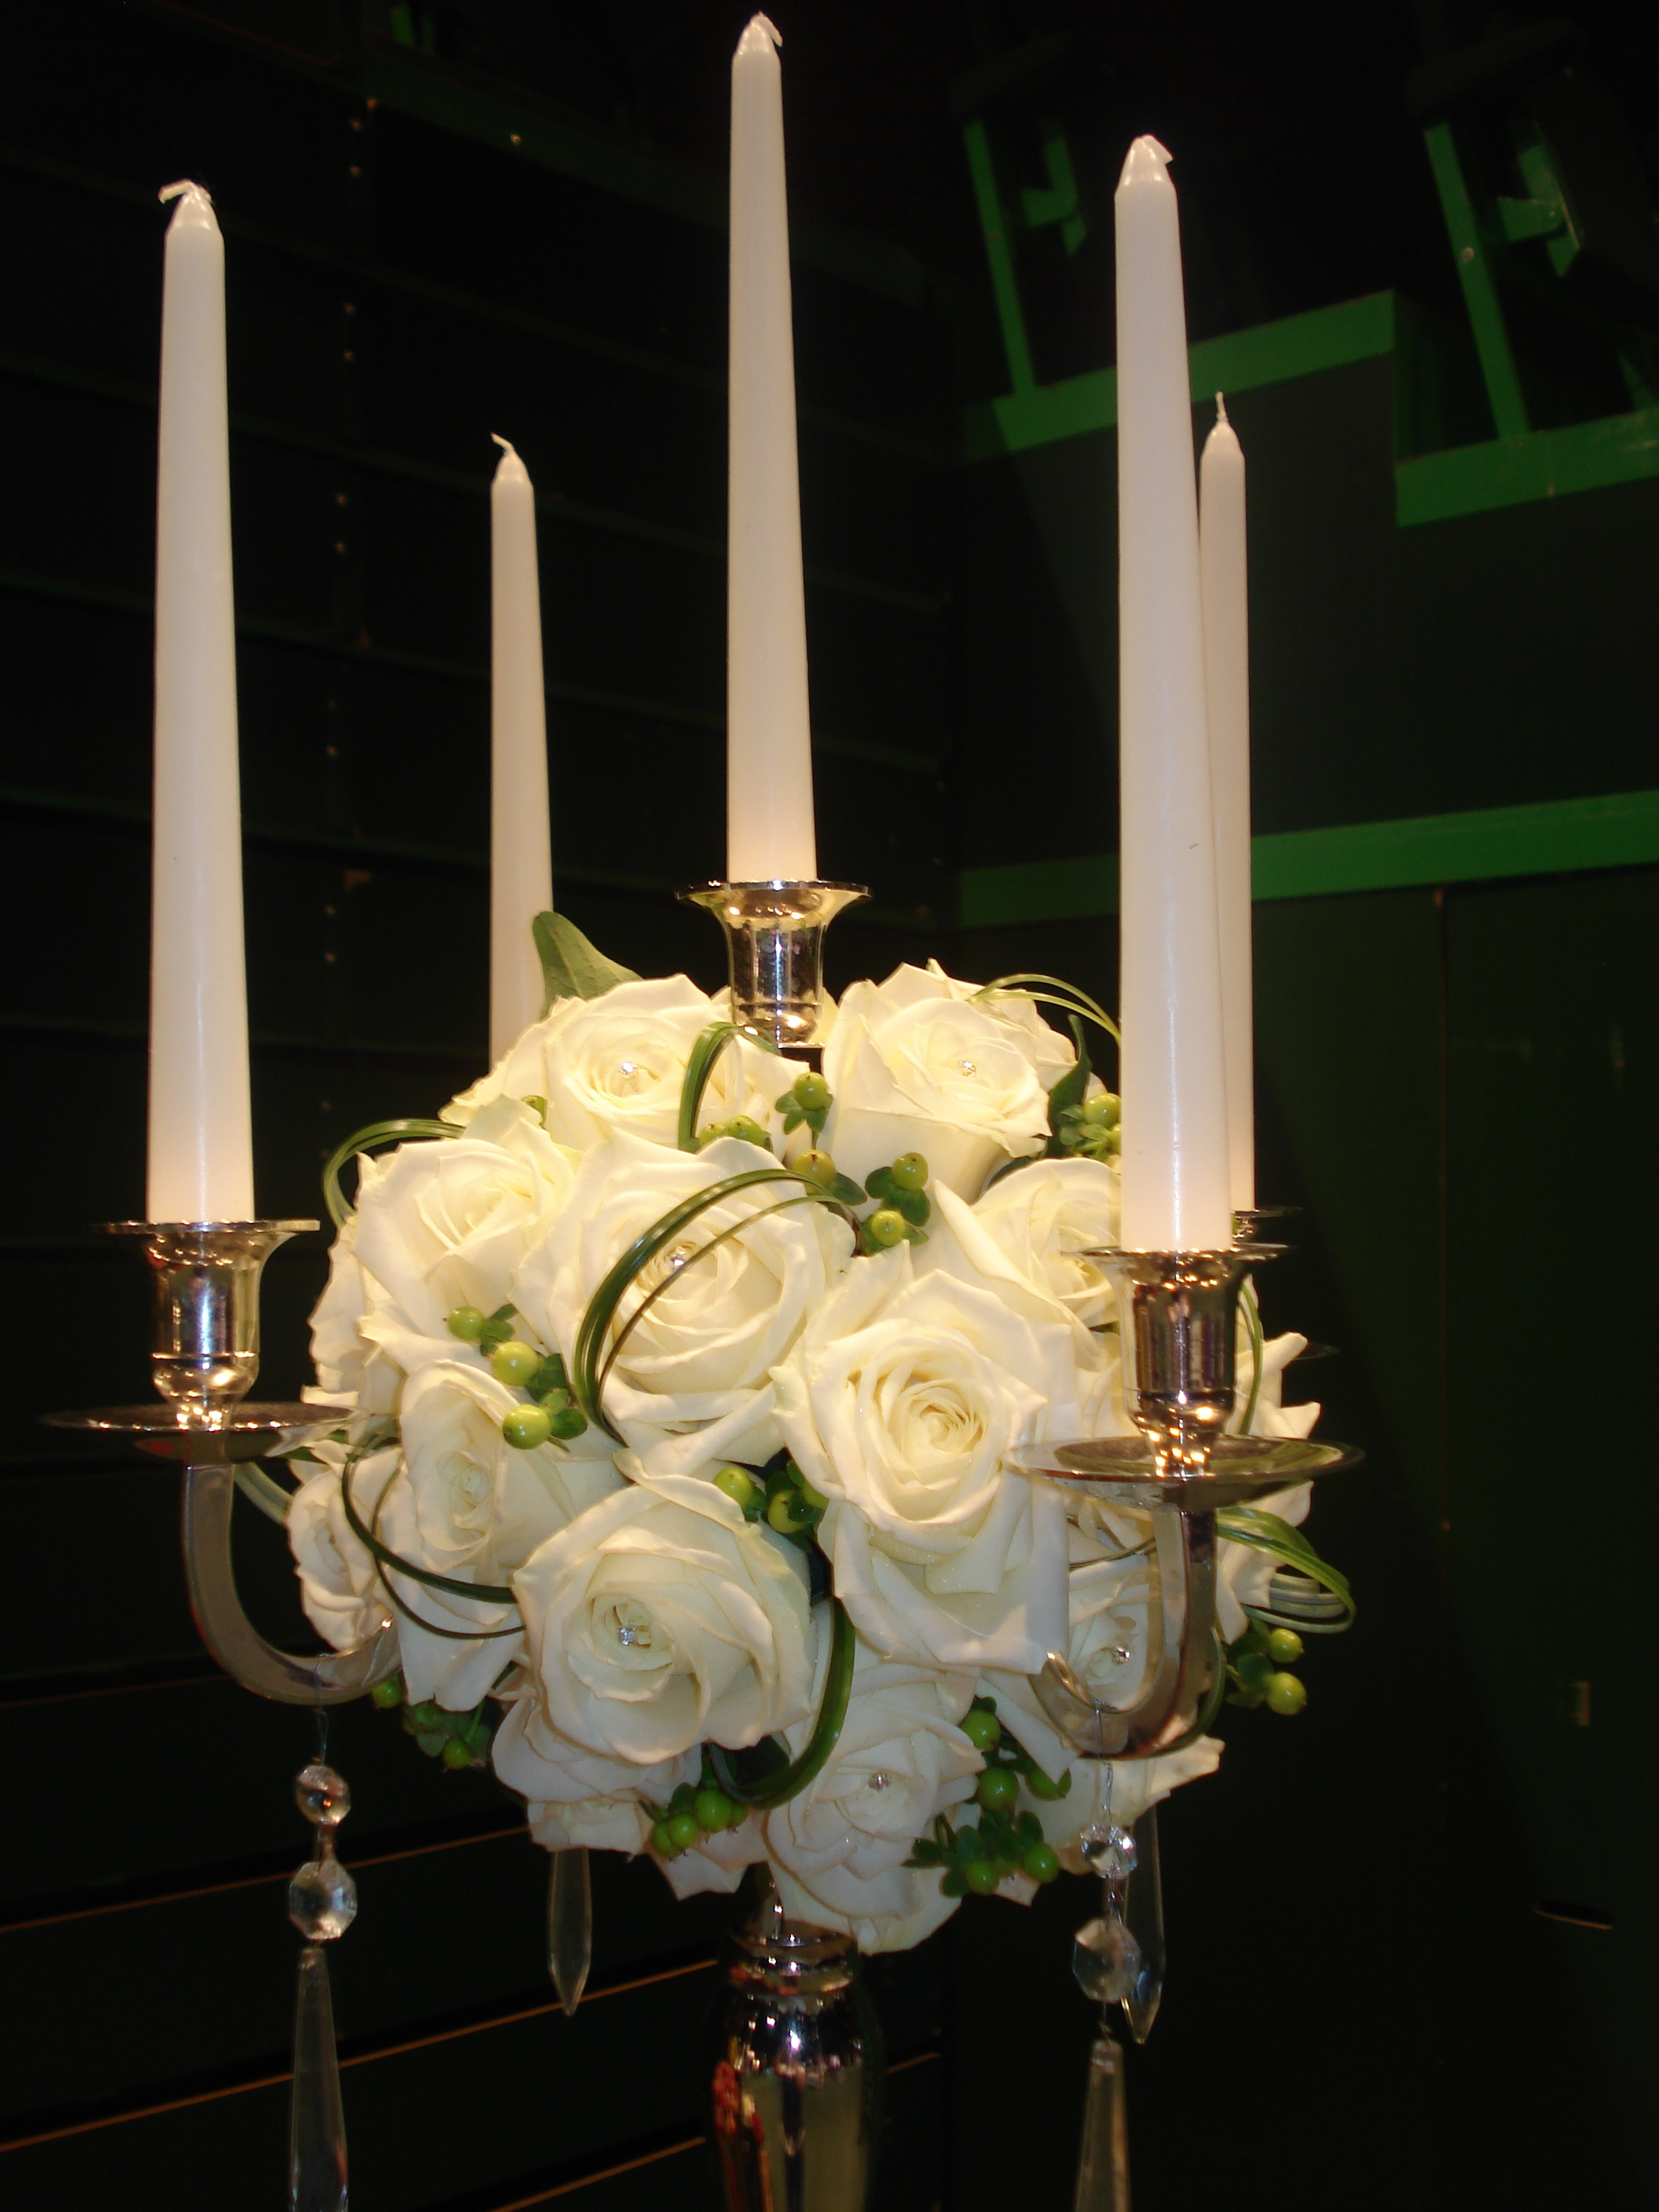 Reception, Flowers & Decor, white, green, silver, The flower company